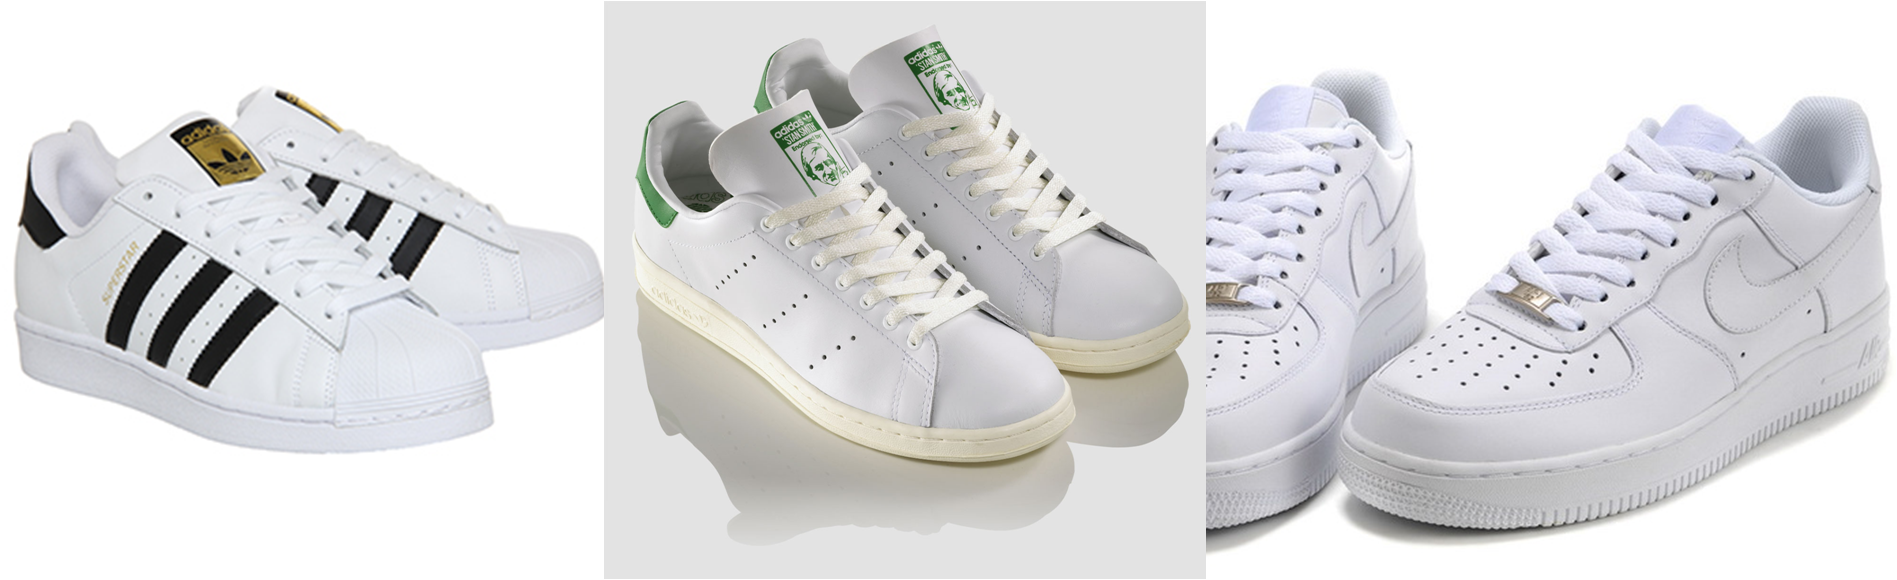 size 40 41d63 47d7b white trainers look the best - adidas superstars, adidas stan smiths, nike  air force 1